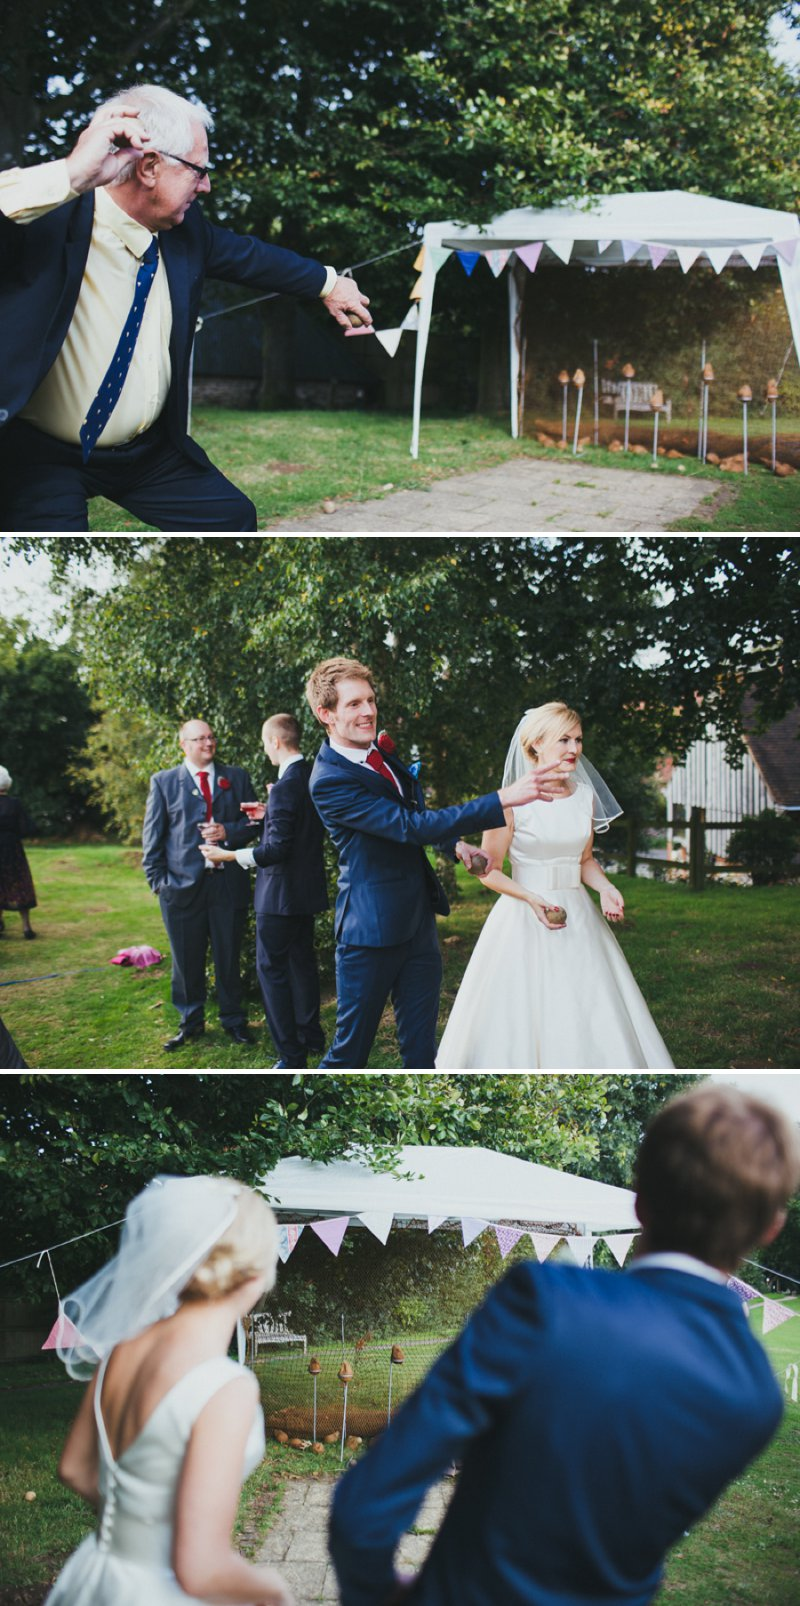 Vintage Inspired DIY Wedding At Kingston Village Hall With Bride In 50s Style Tea Length Gown And Groom In Topman Suit With Red Shoes And Knitted Bouquets, Ties And Corsages With Fete Games And A Coconut Shy 7